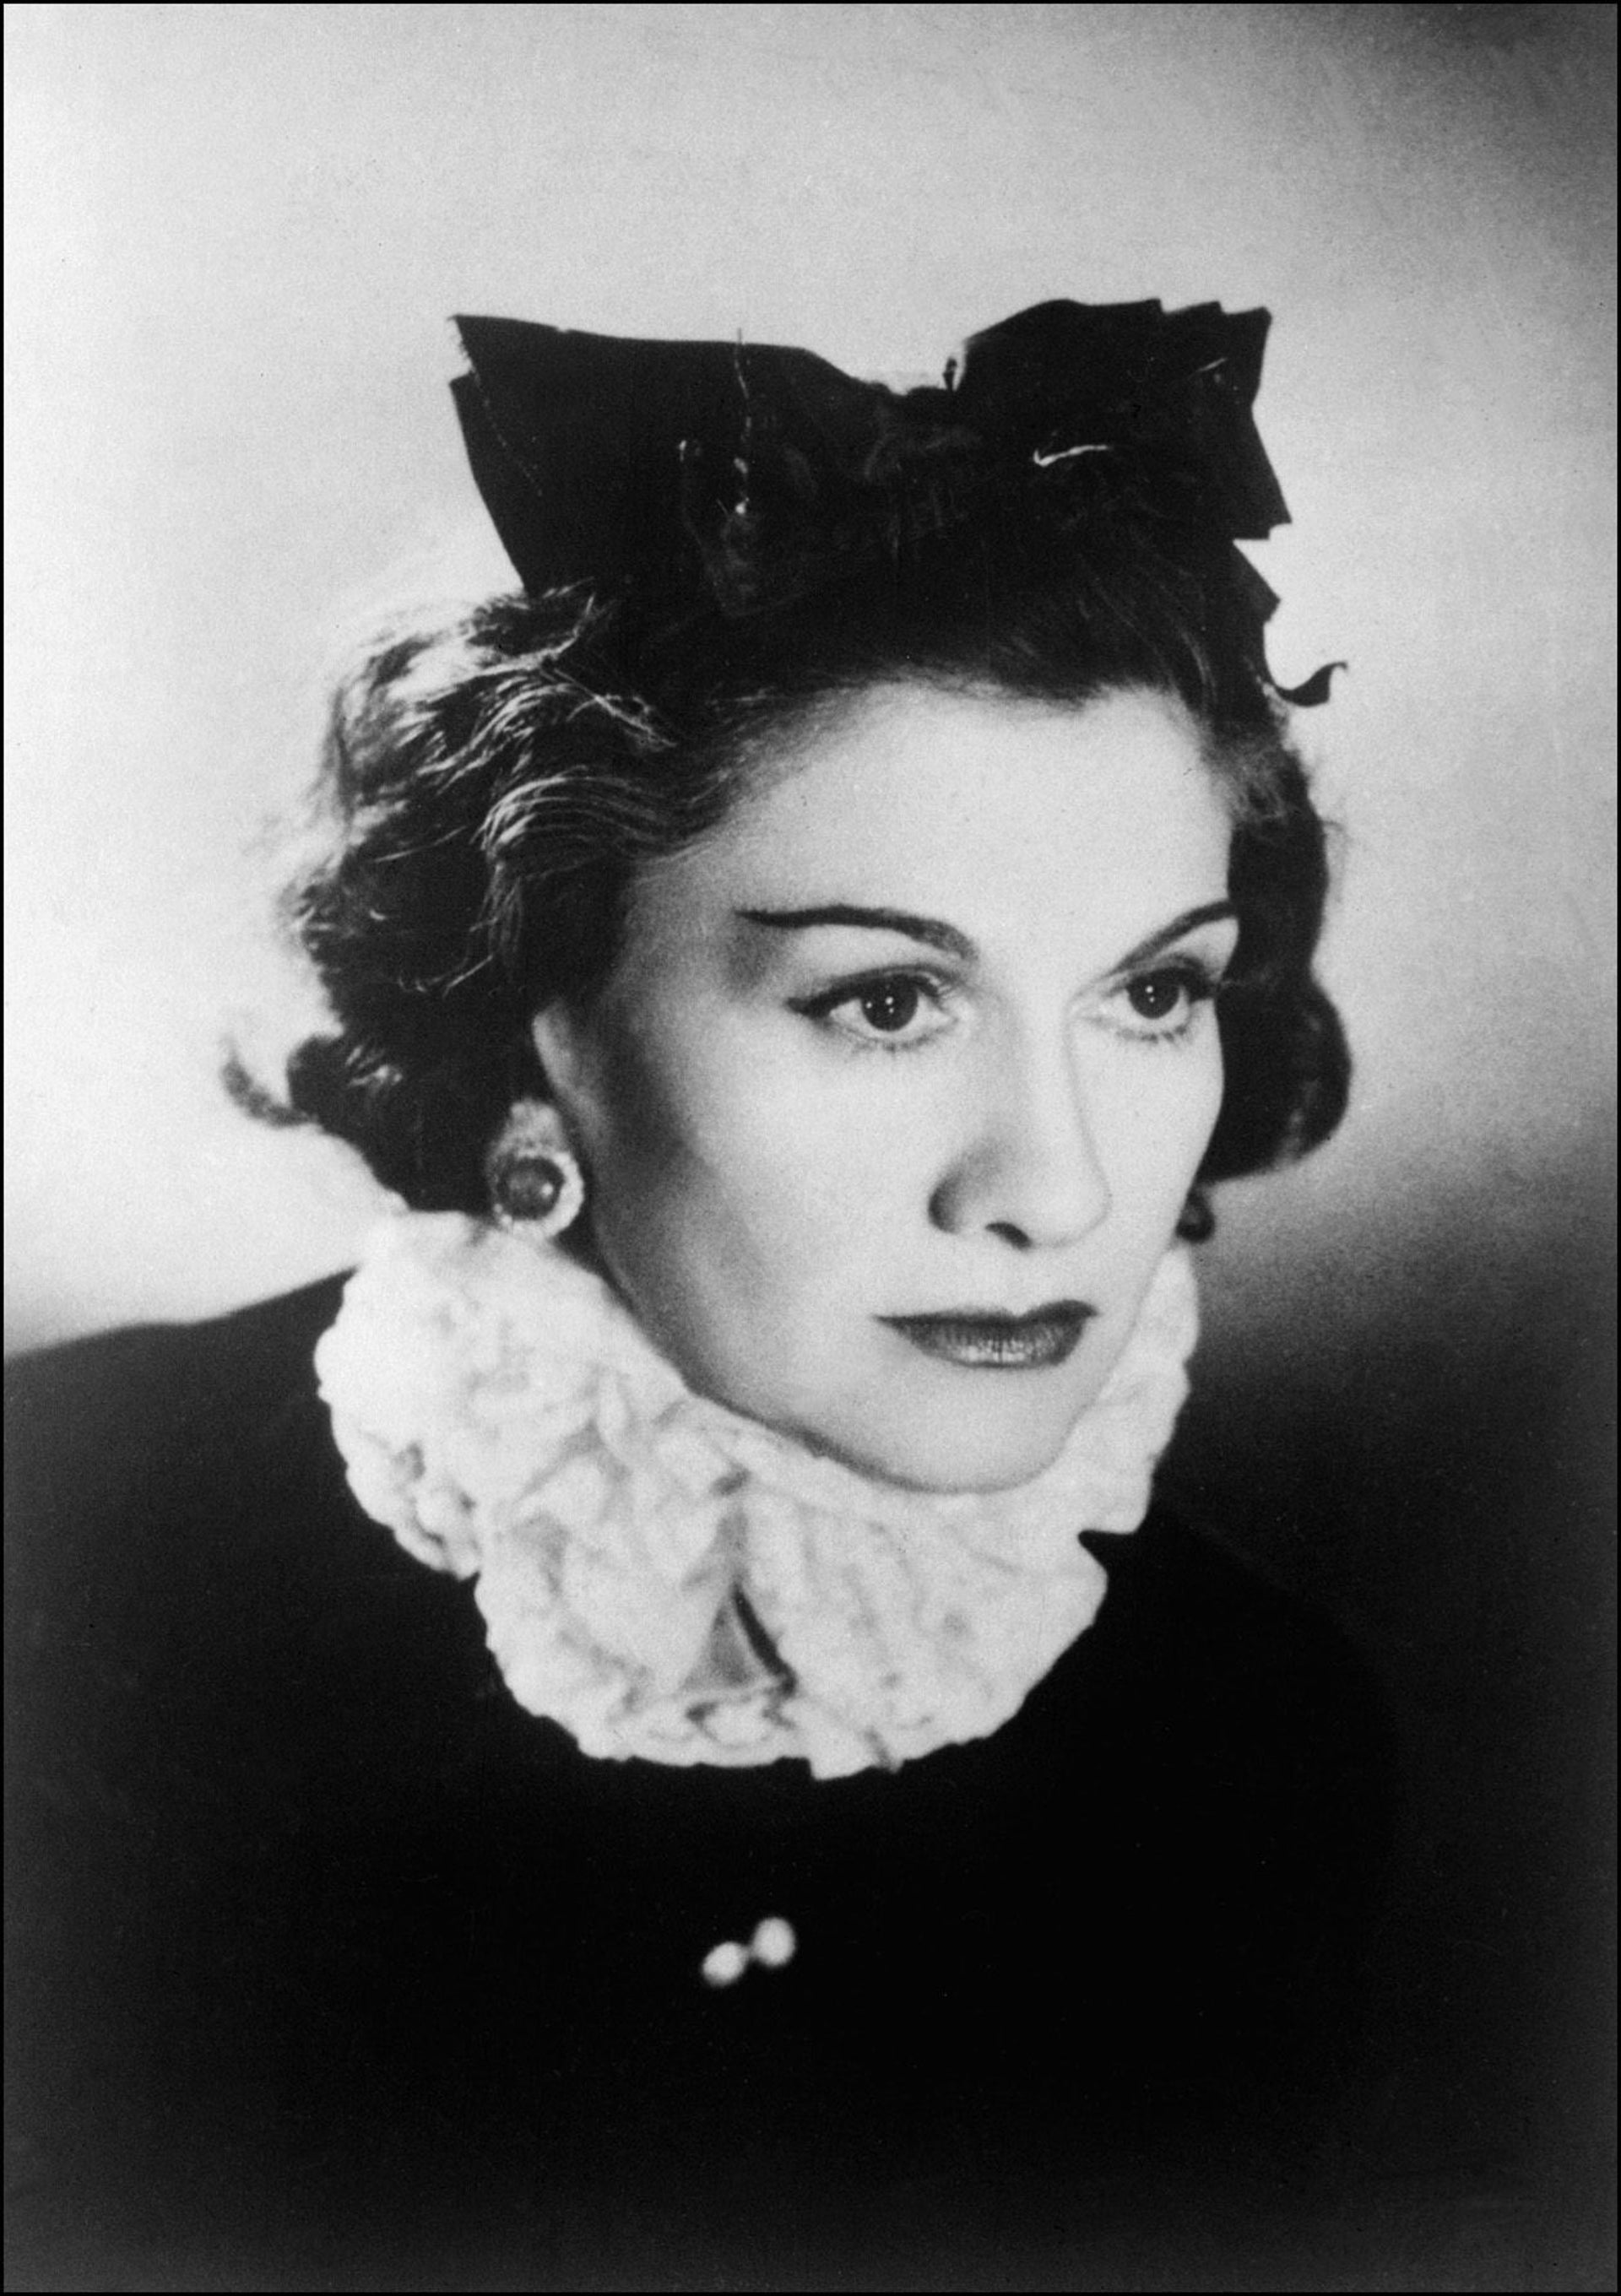 Coco Chanel in 1944. Exploited the Aryan laws in order to deprive her Jewish partners.